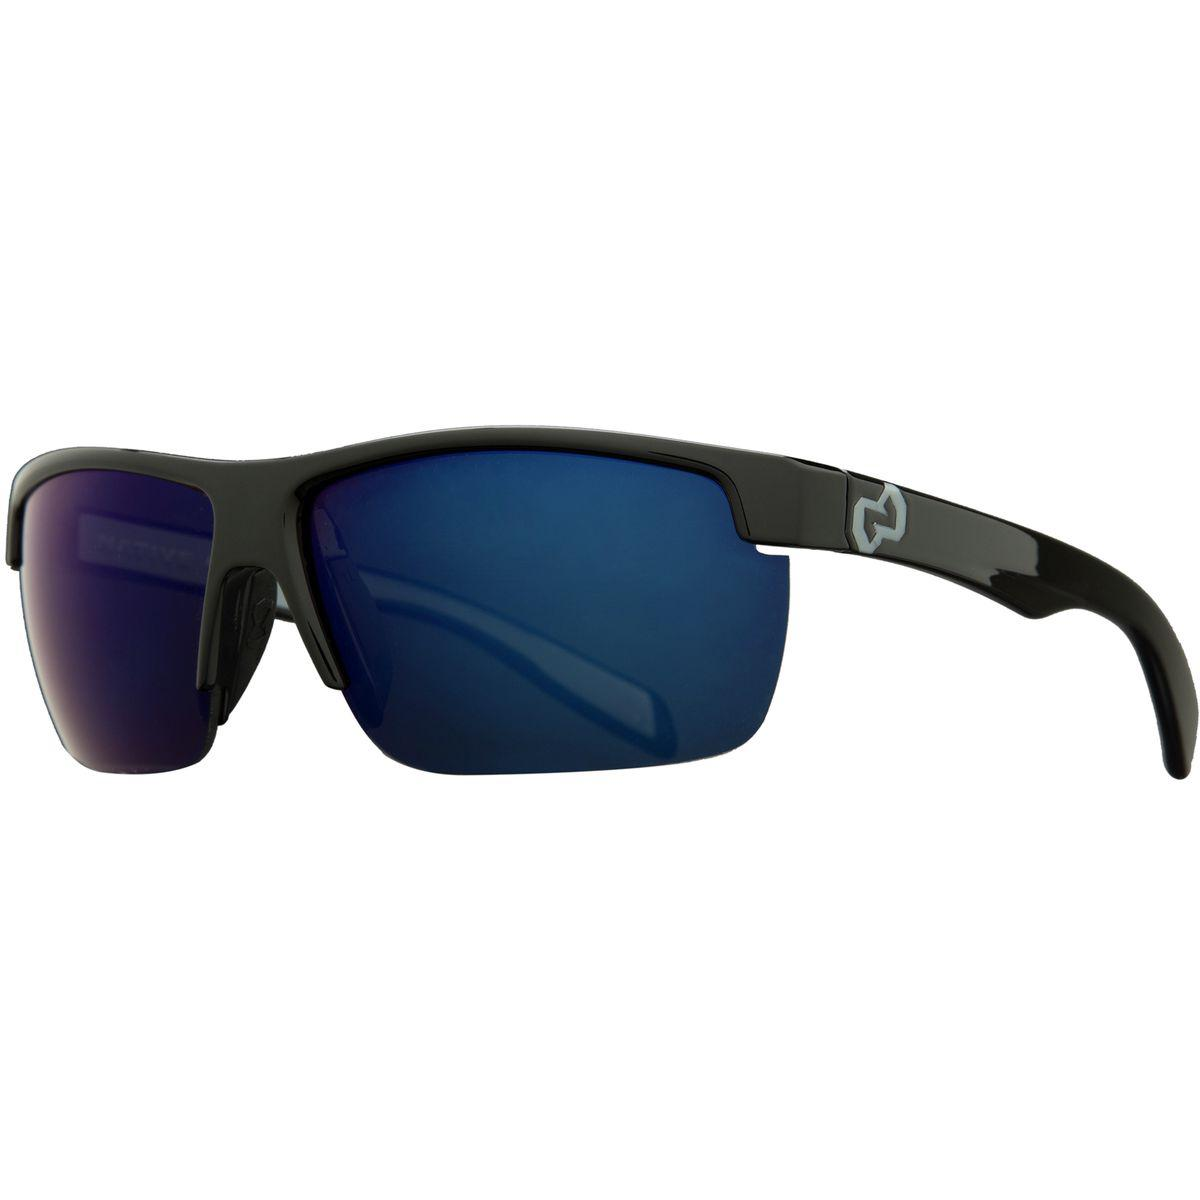 4ba5ccdcb4 Lyst - Native Eyewear Linville Sunglasses - Polarized in Blue for Men